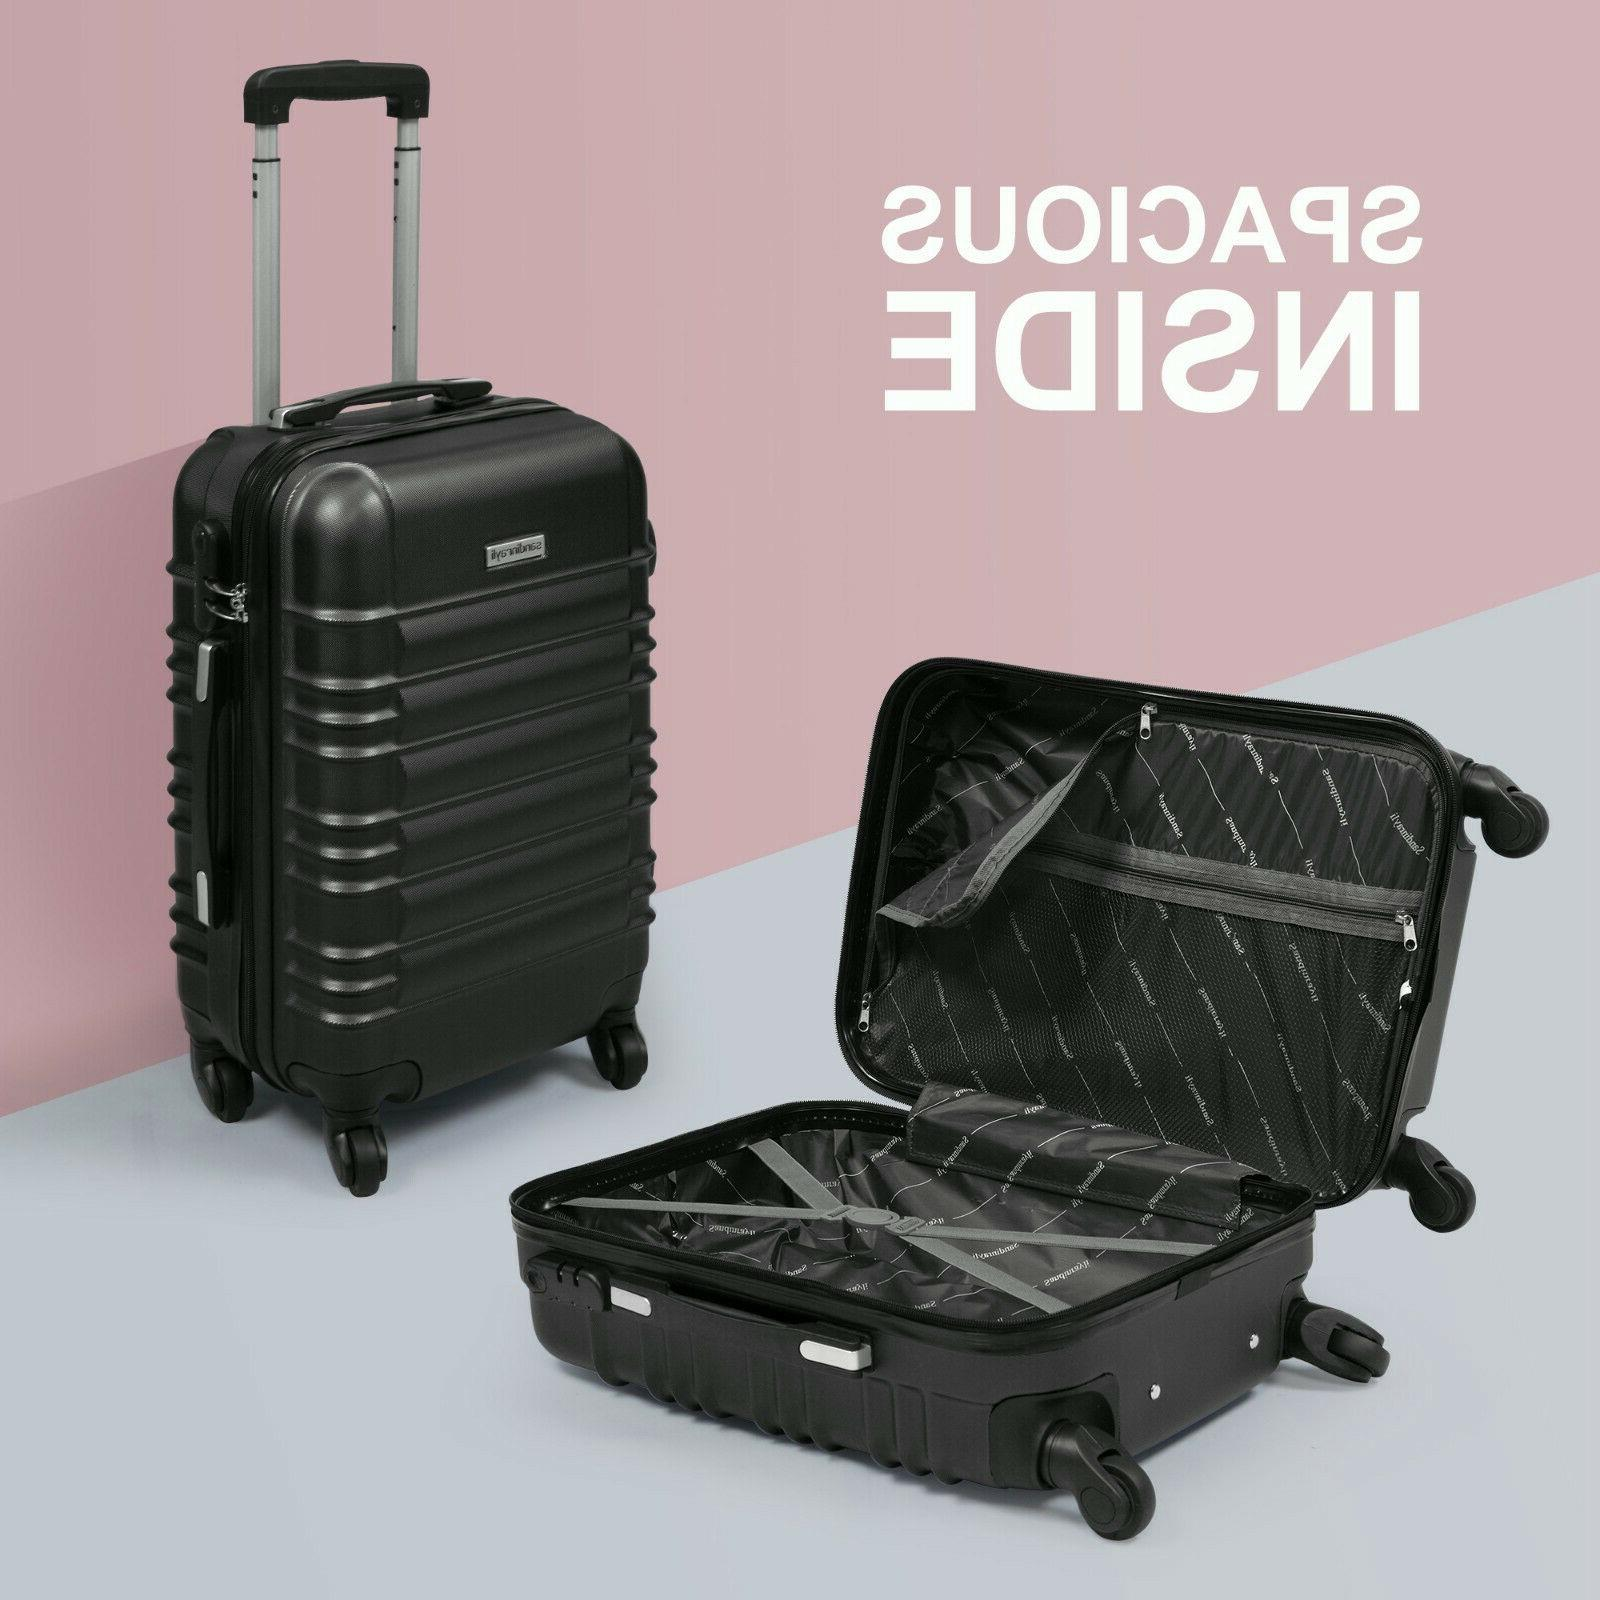 "20"" ABS Luggage Travel Suitcase Black"